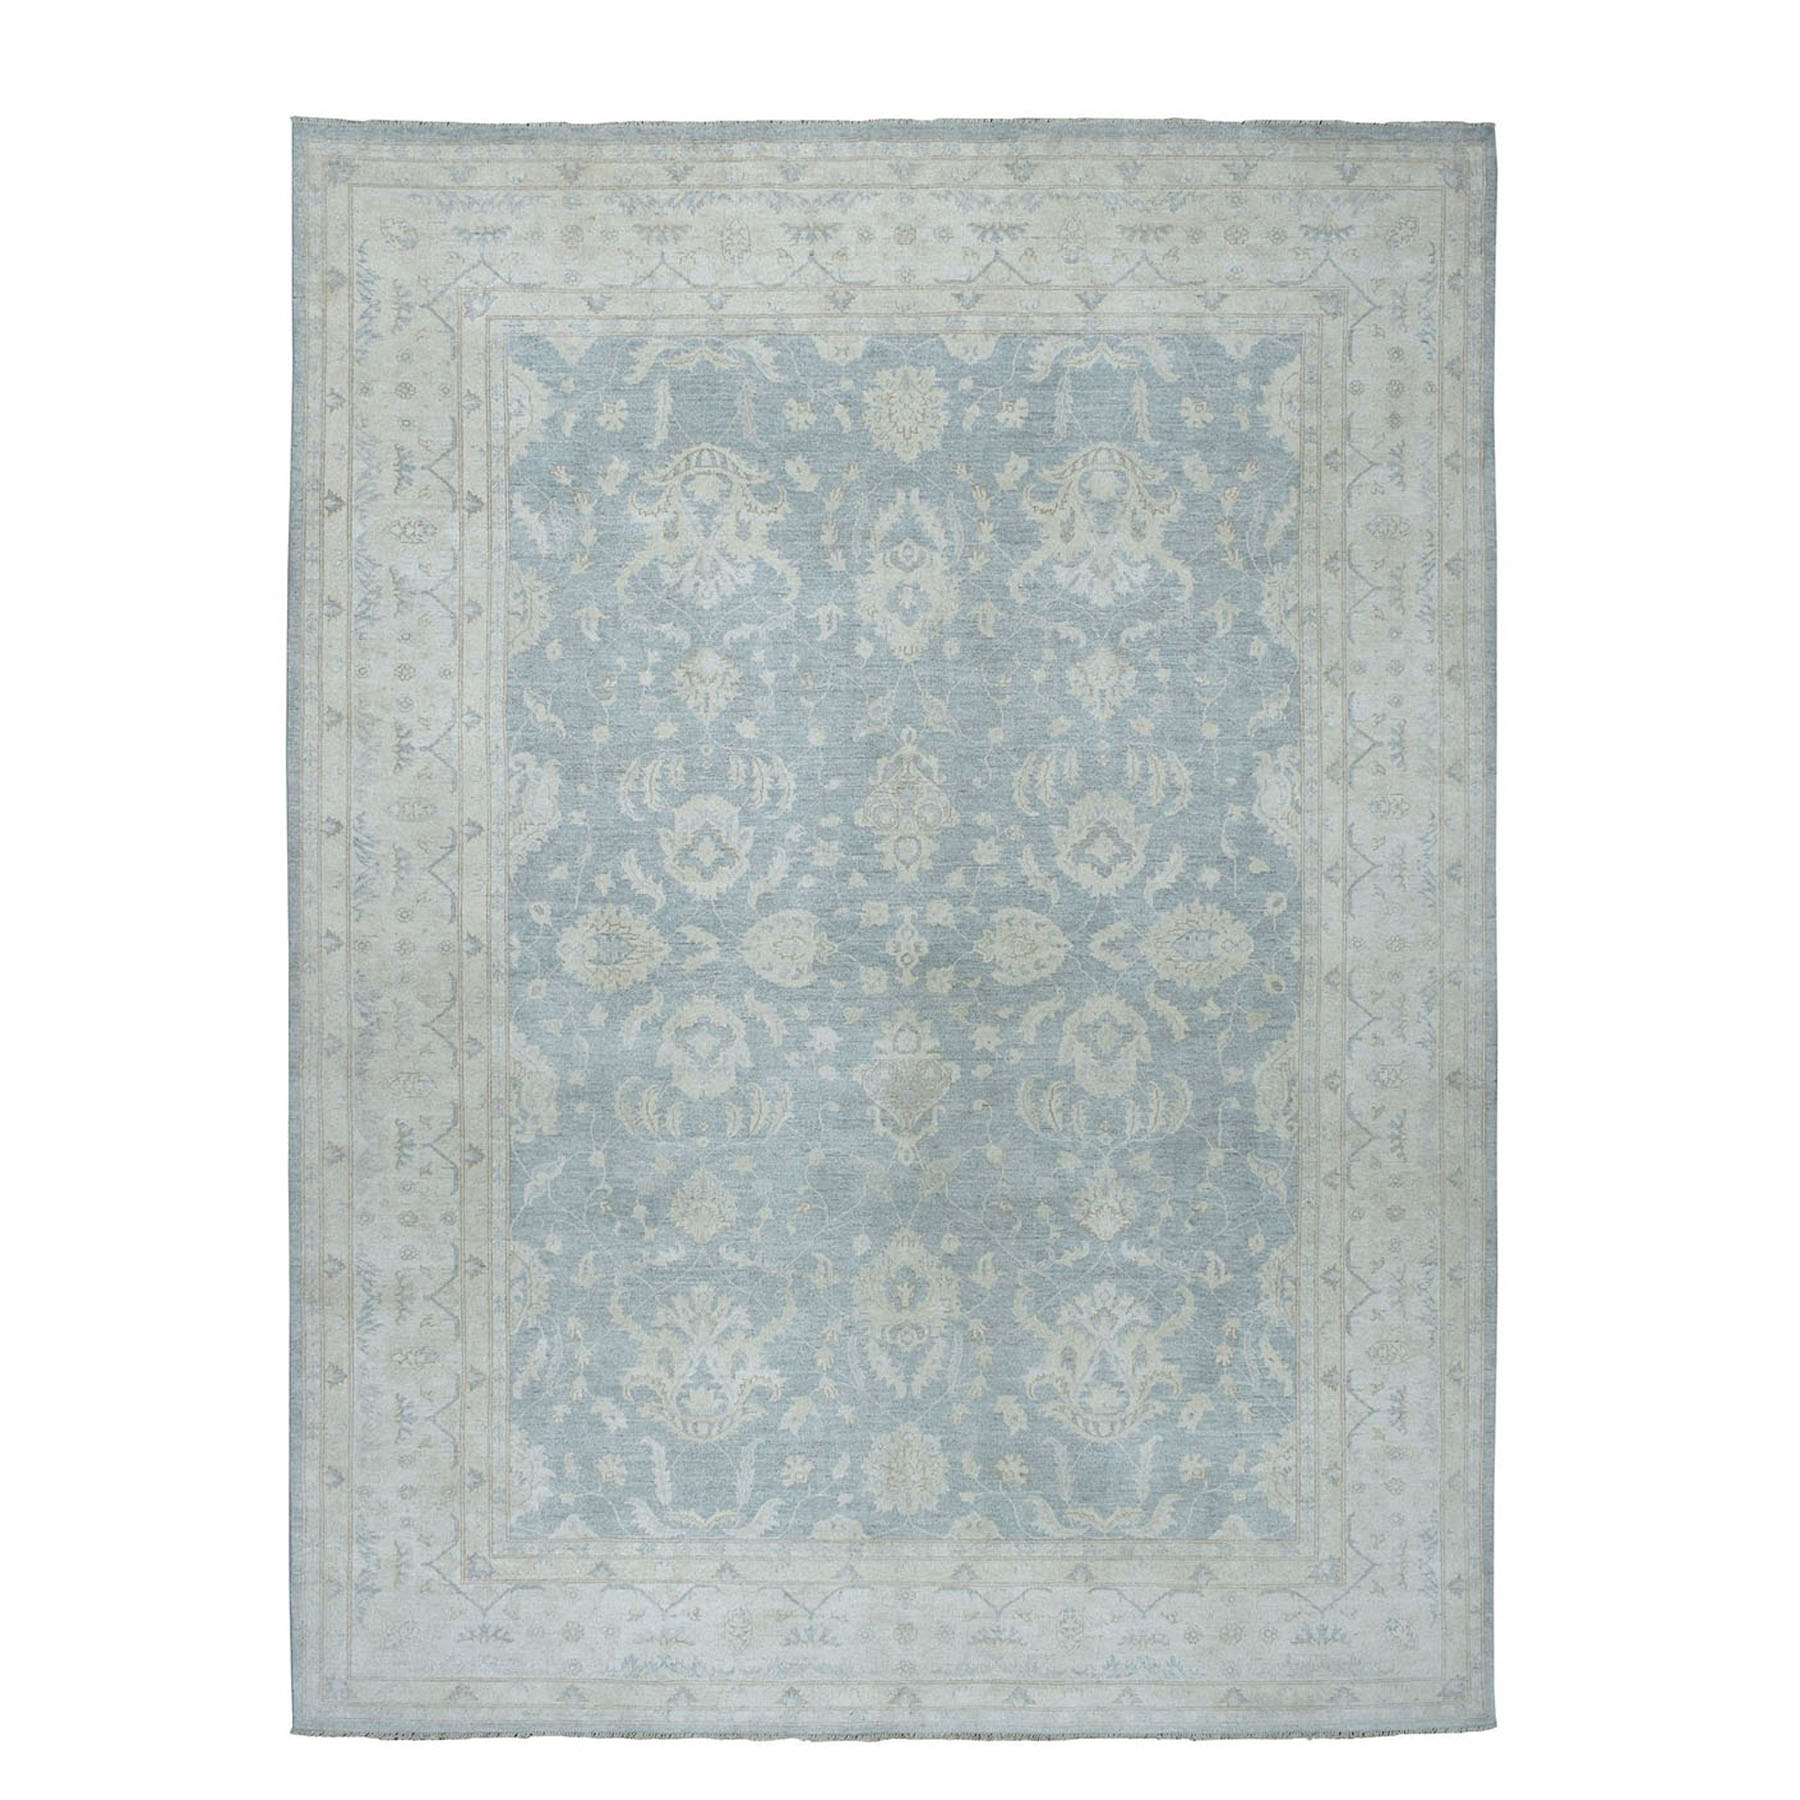 """8'9""""x12' White Wash Peshawar Pure Wool Hand-Knotted Oriental Rug 50663"""